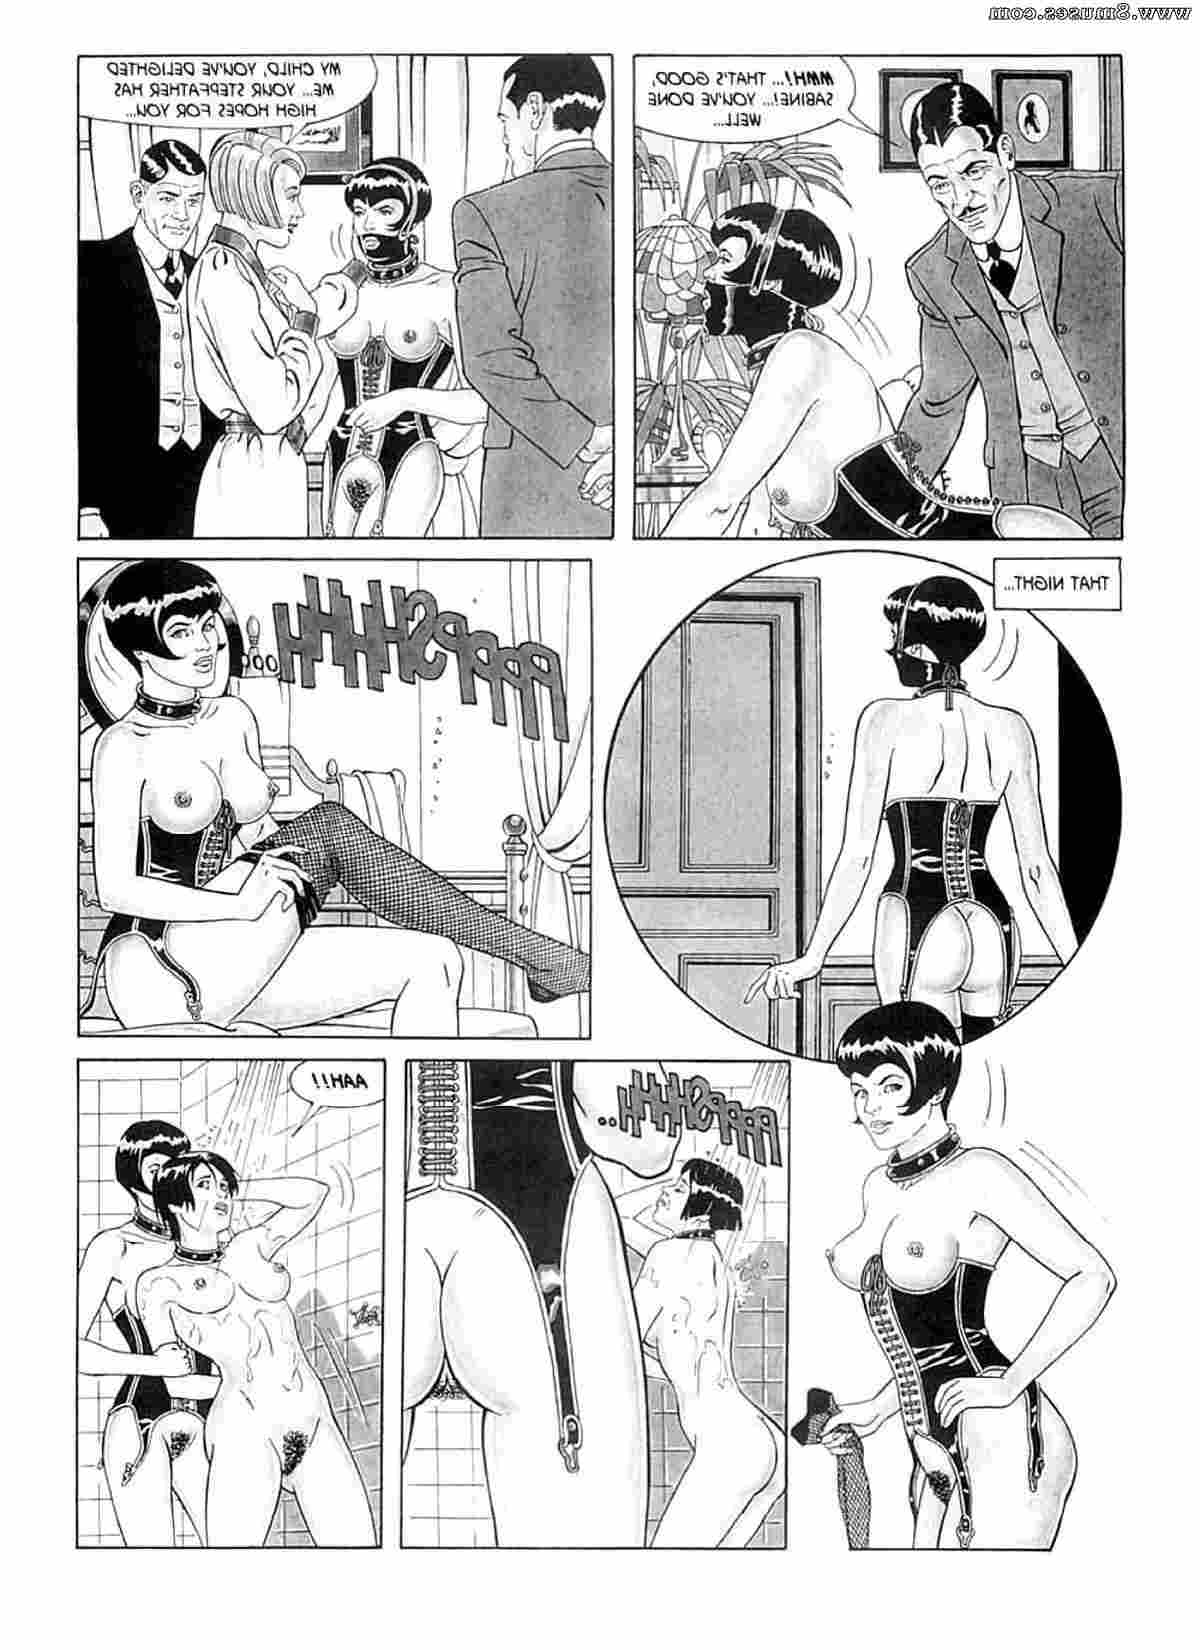 Stramaglia-Morale-Comics/Education-Anglaise Education_Anglaise__8muses_-_Sex_and_Porn_Comics_22.jpg